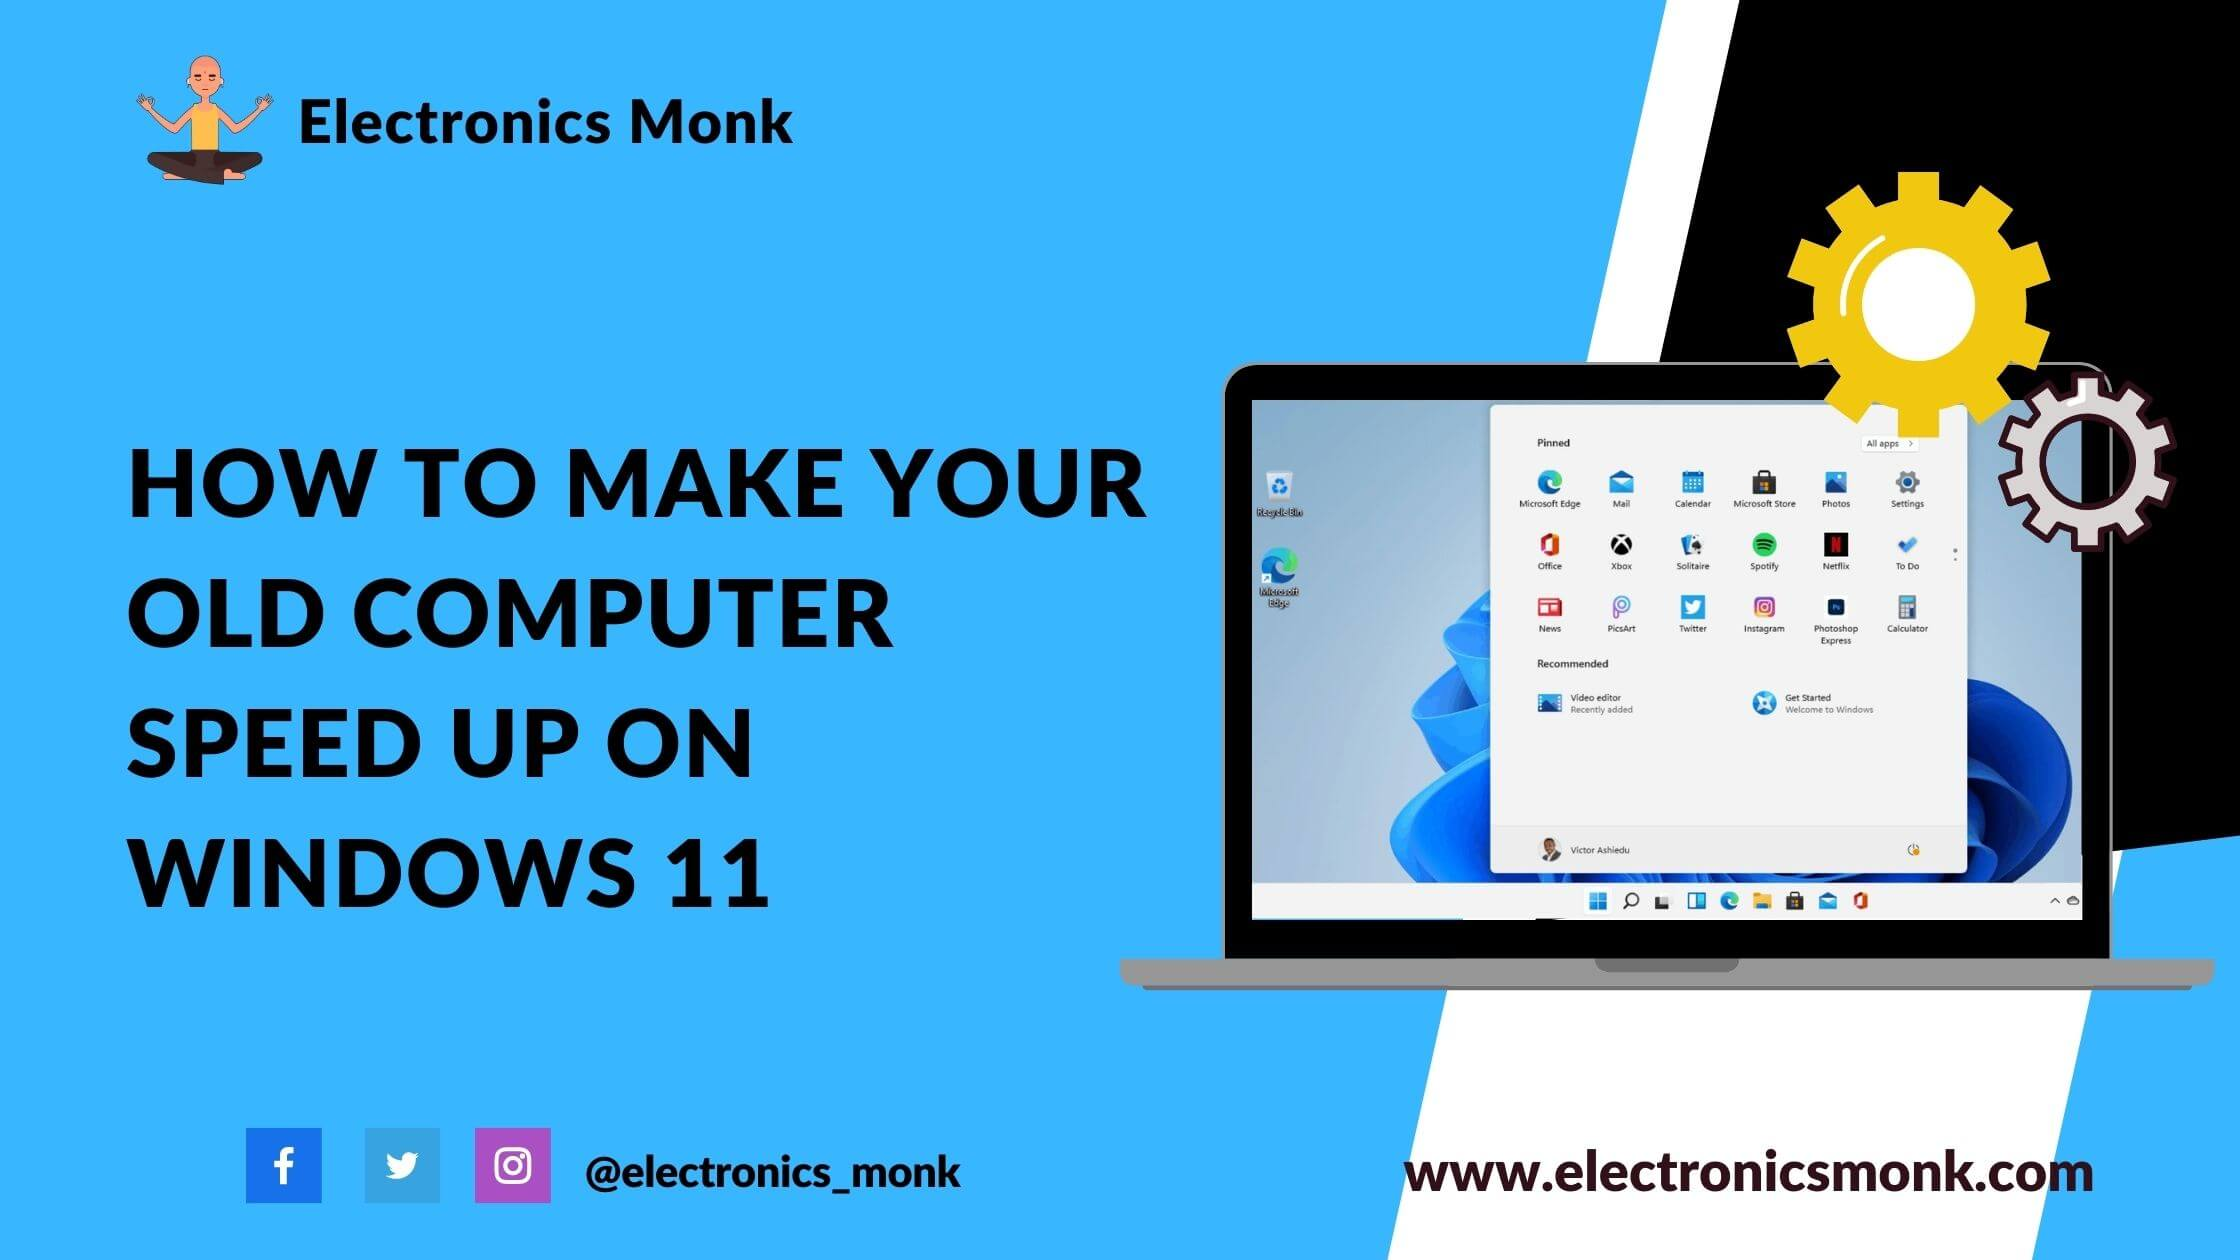 How To Make Your Old Computer Speed Up On Windows 11